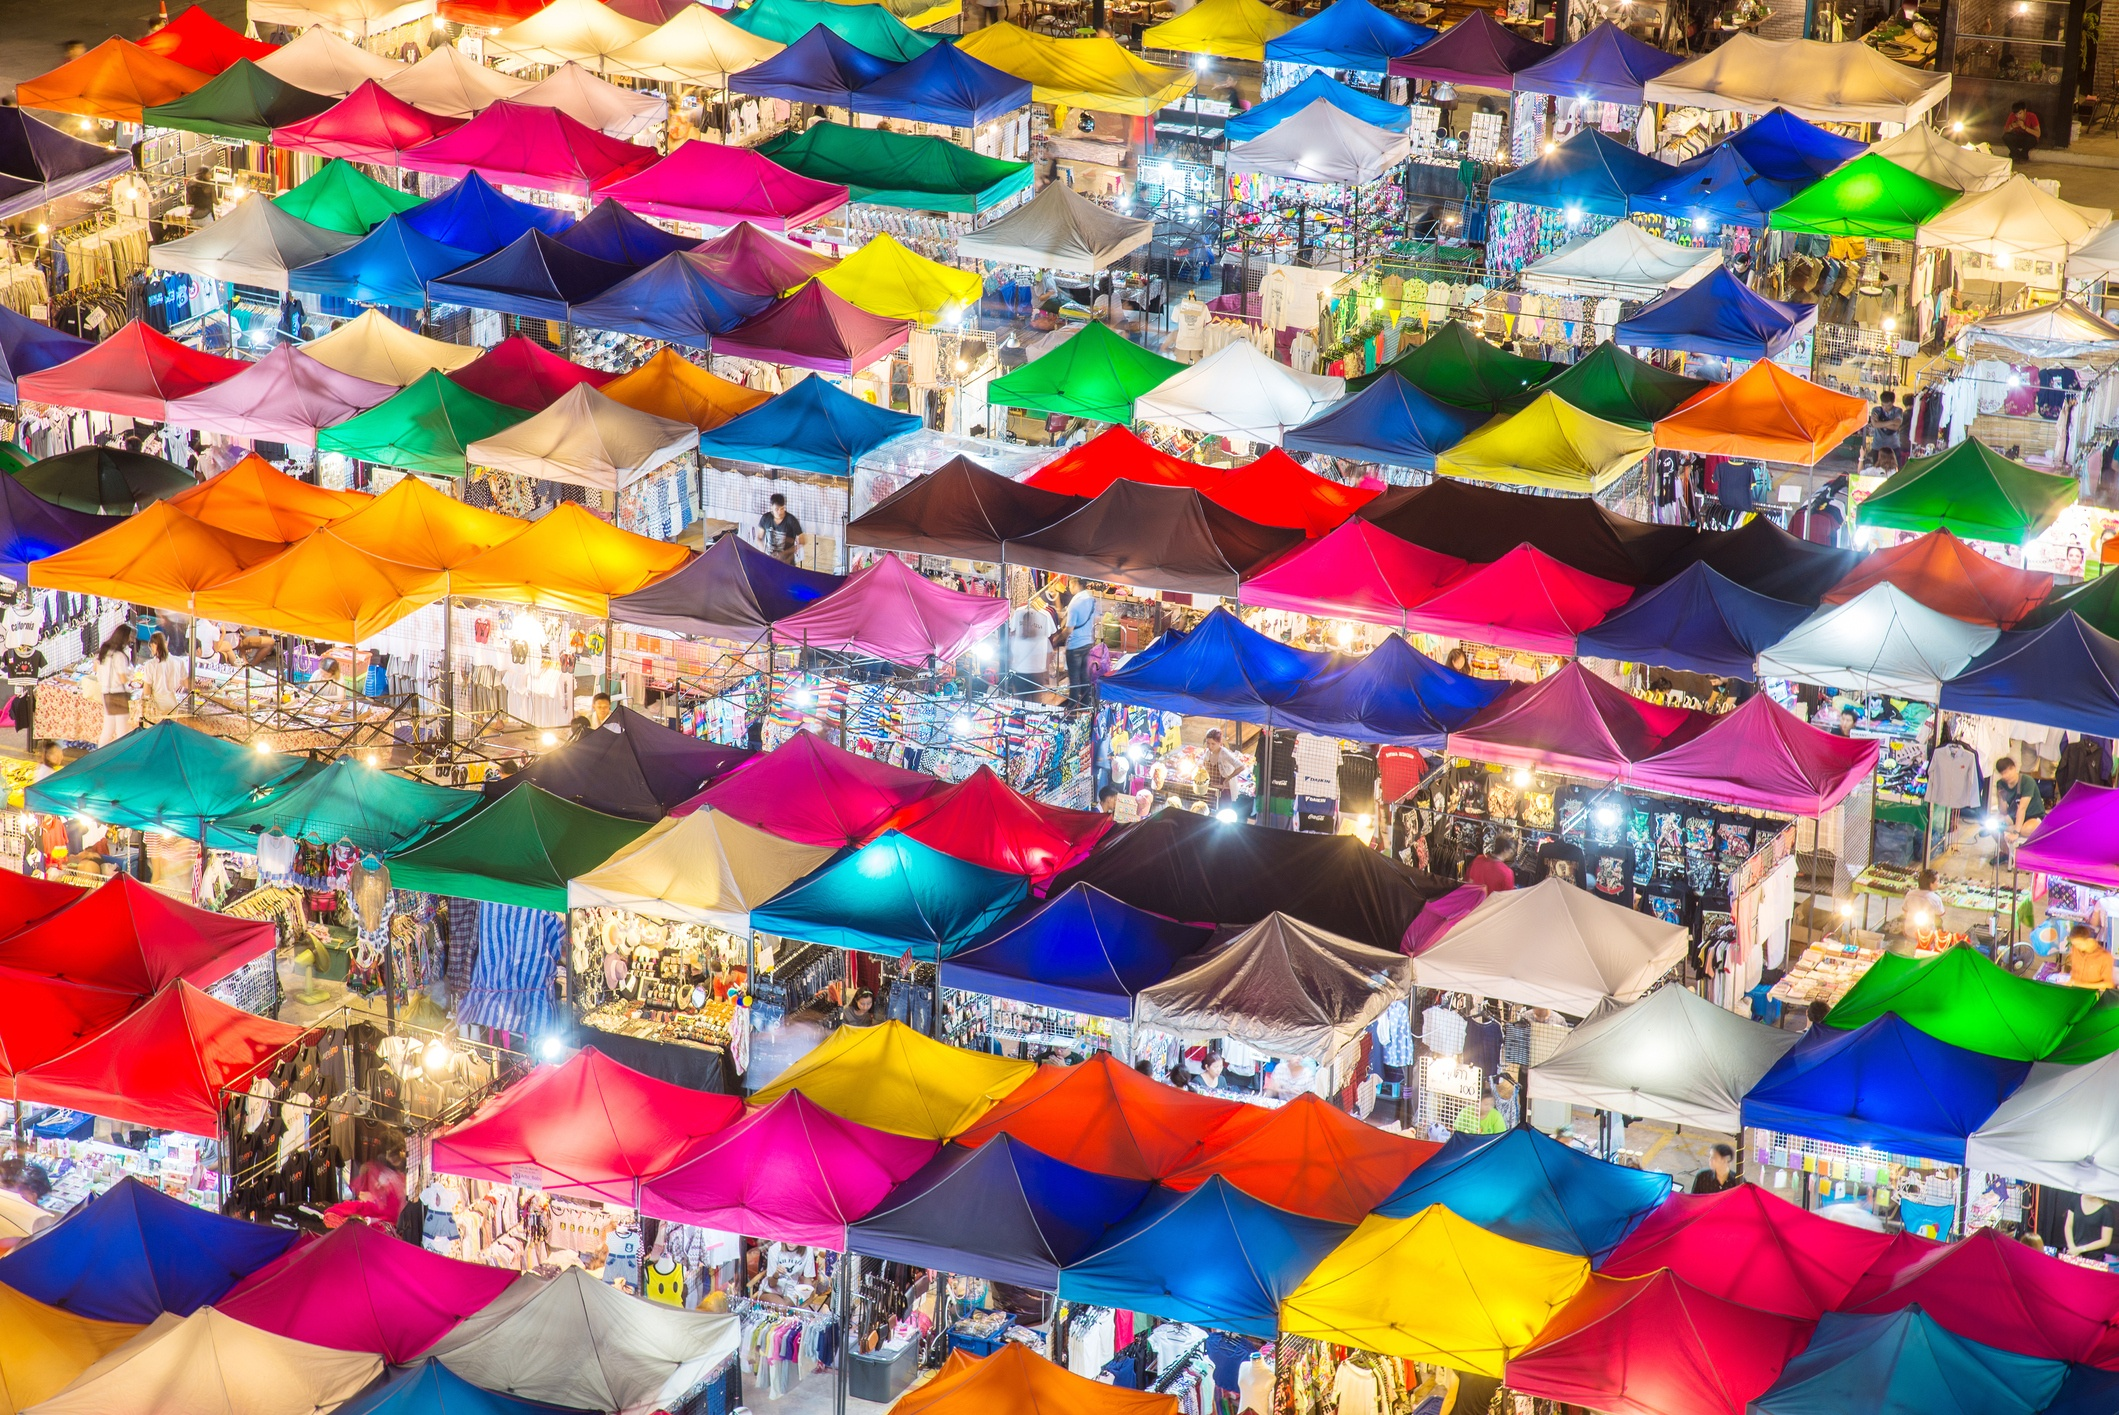 Markets in Asia